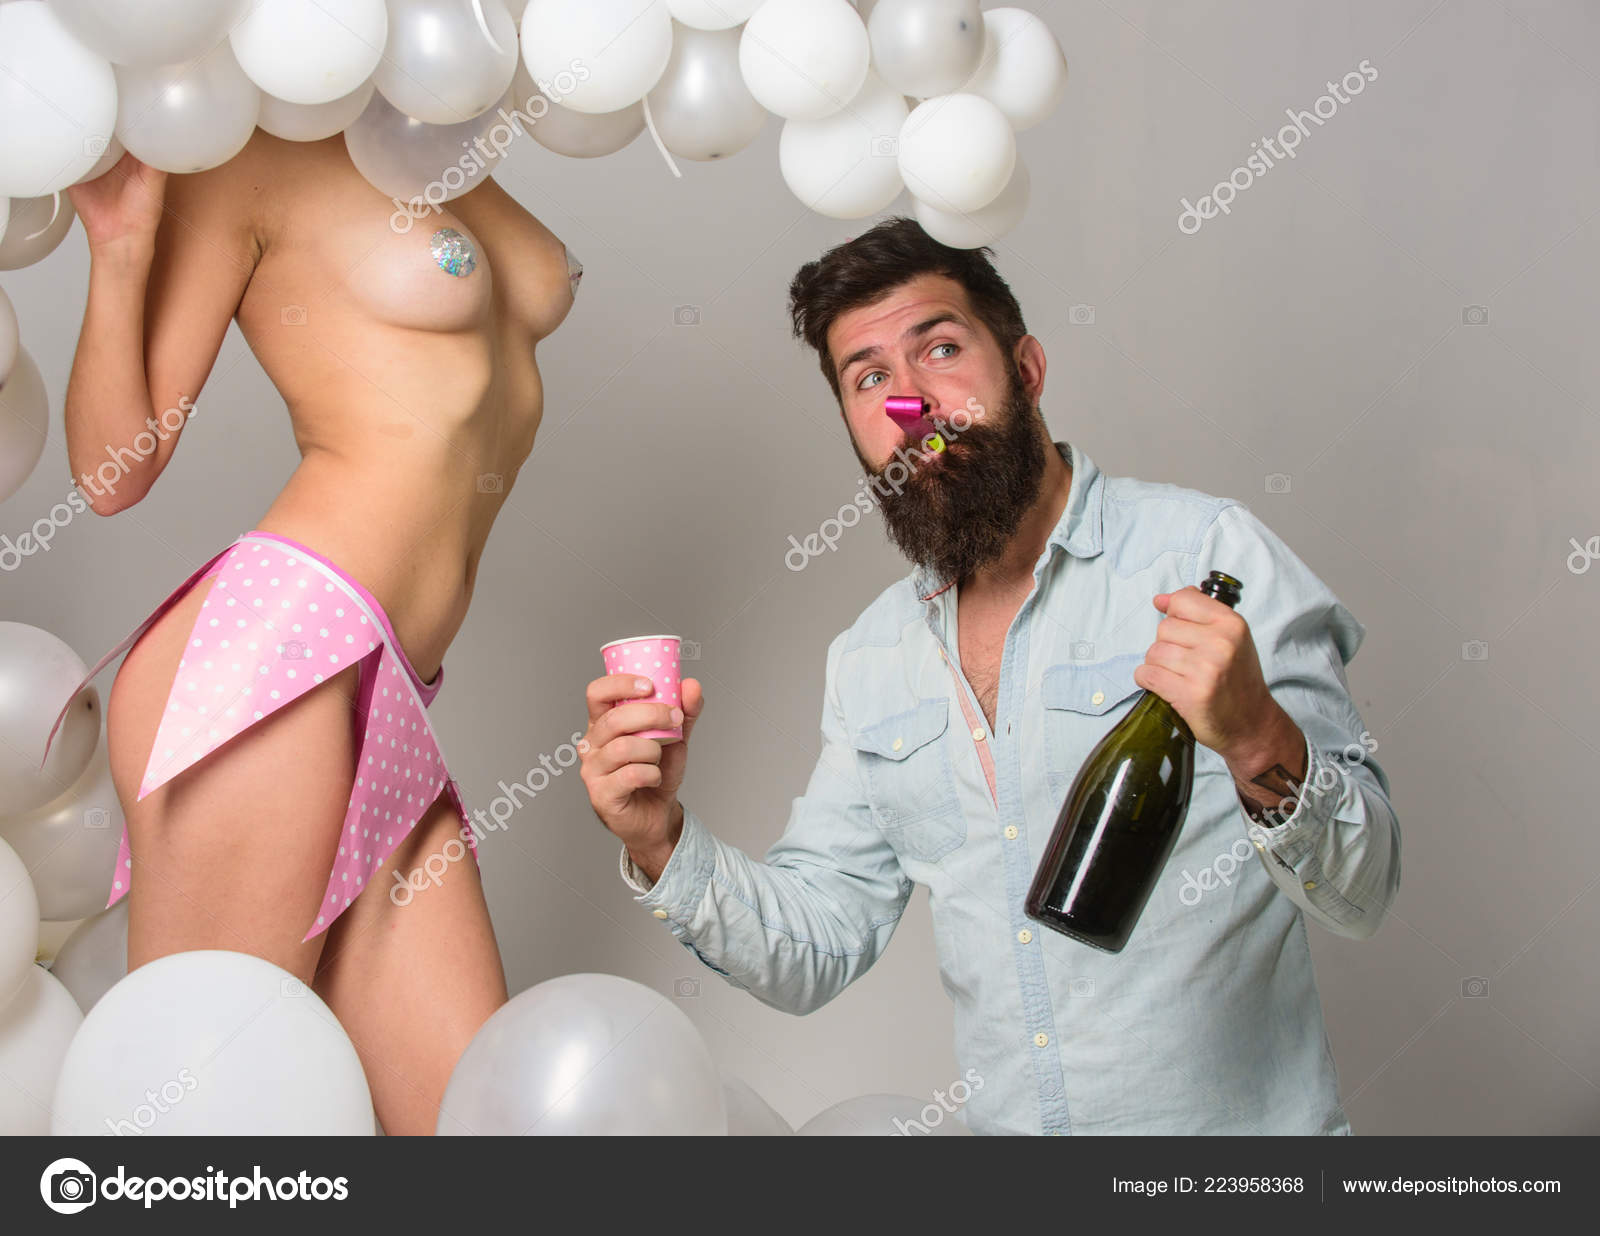 Nude women have birthday party